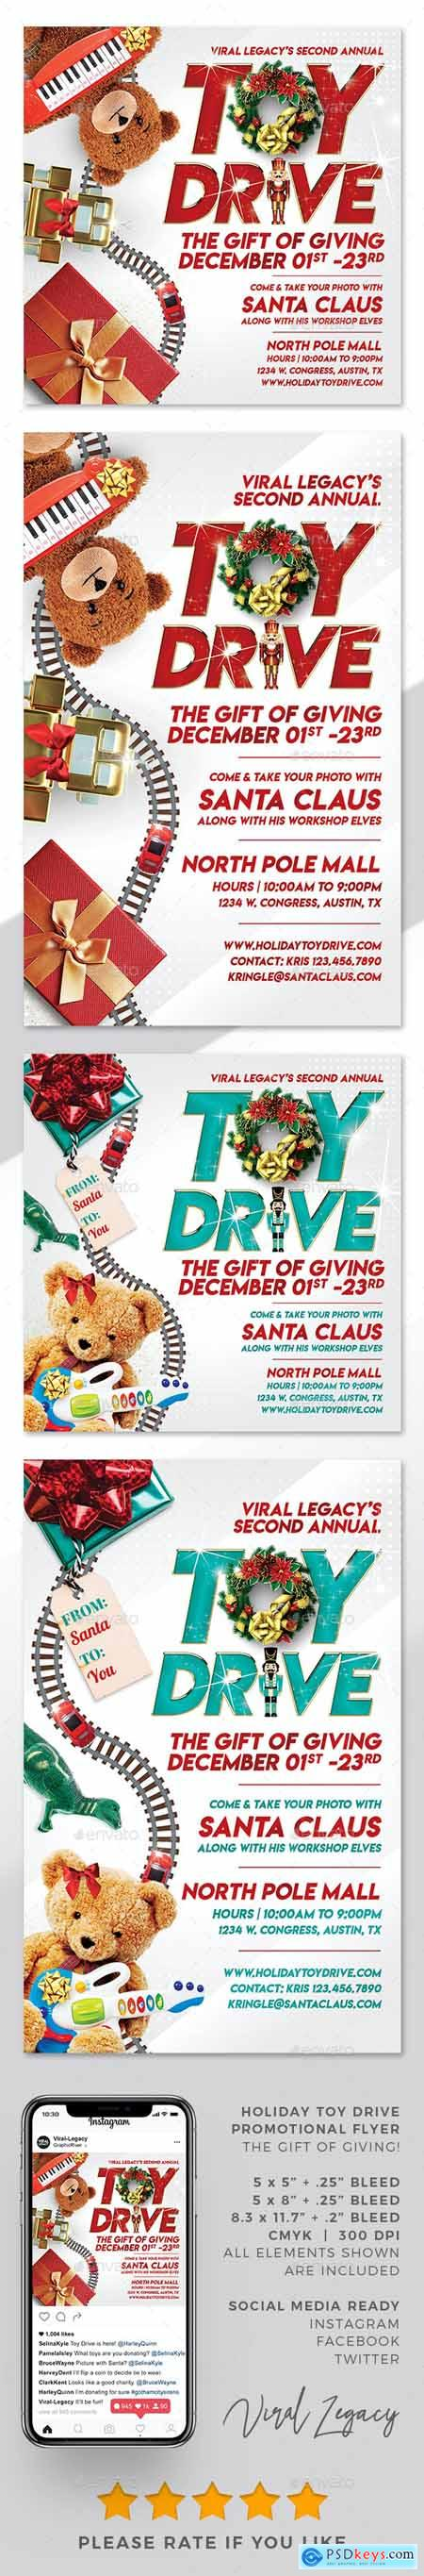 Toys for Tots Toy Drive Flyer V07 Template 24848815